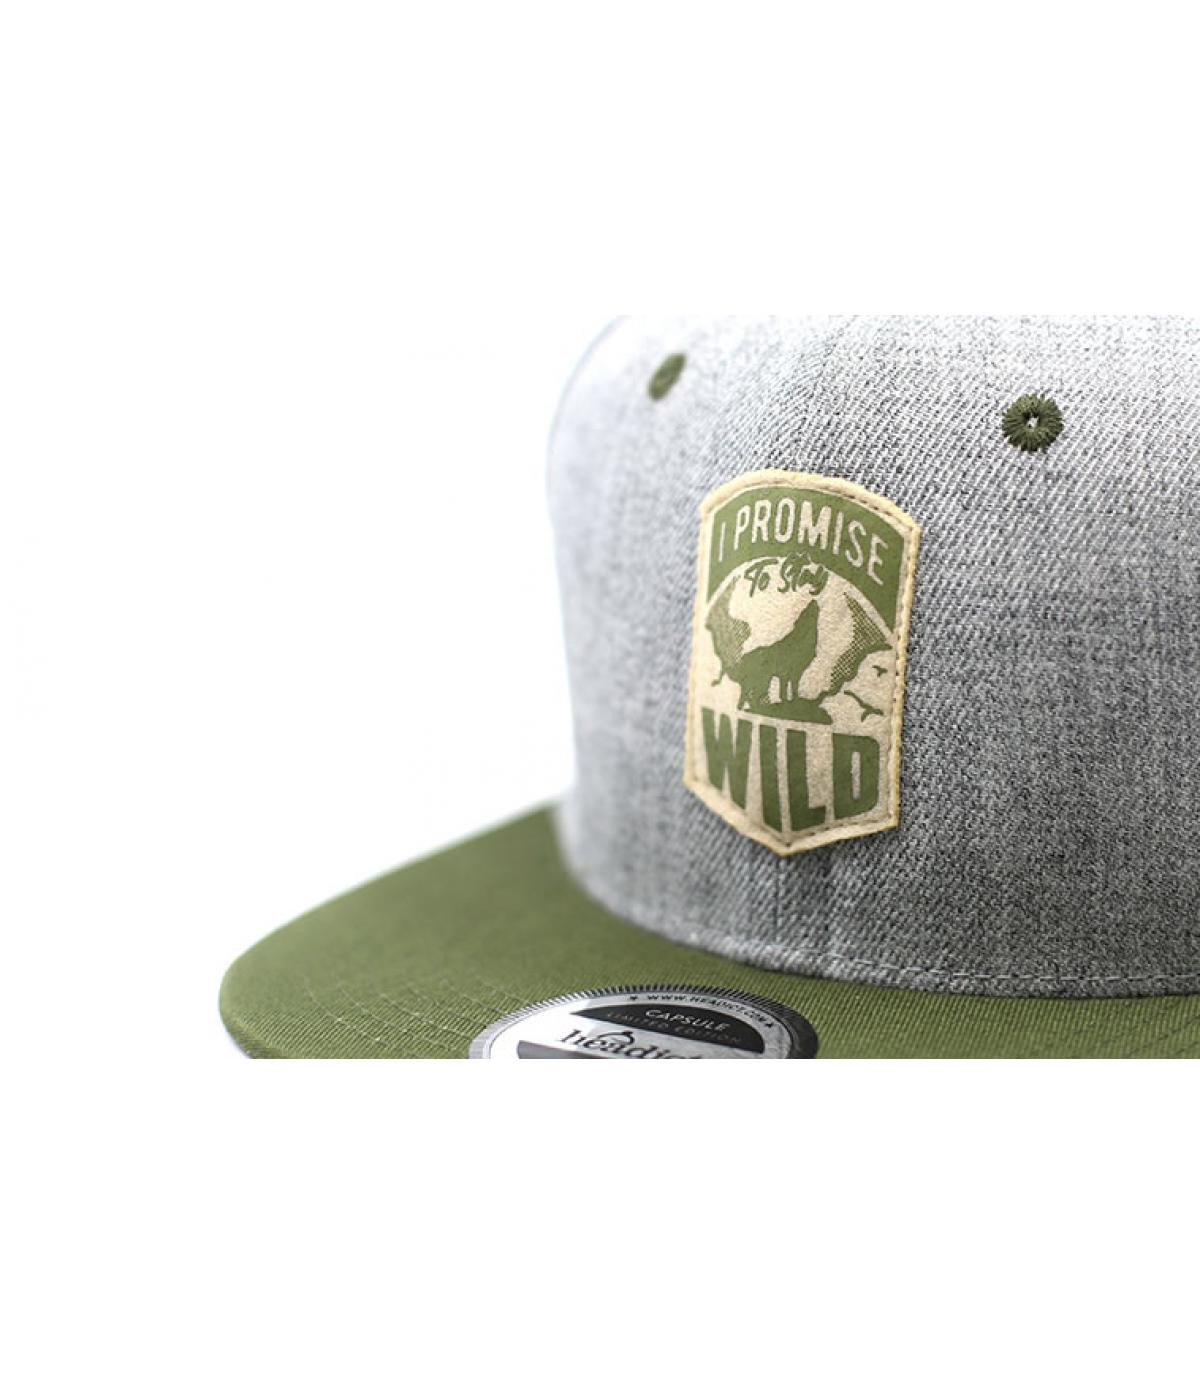 Détails Snapback I Promise to Stay Wild - image 3